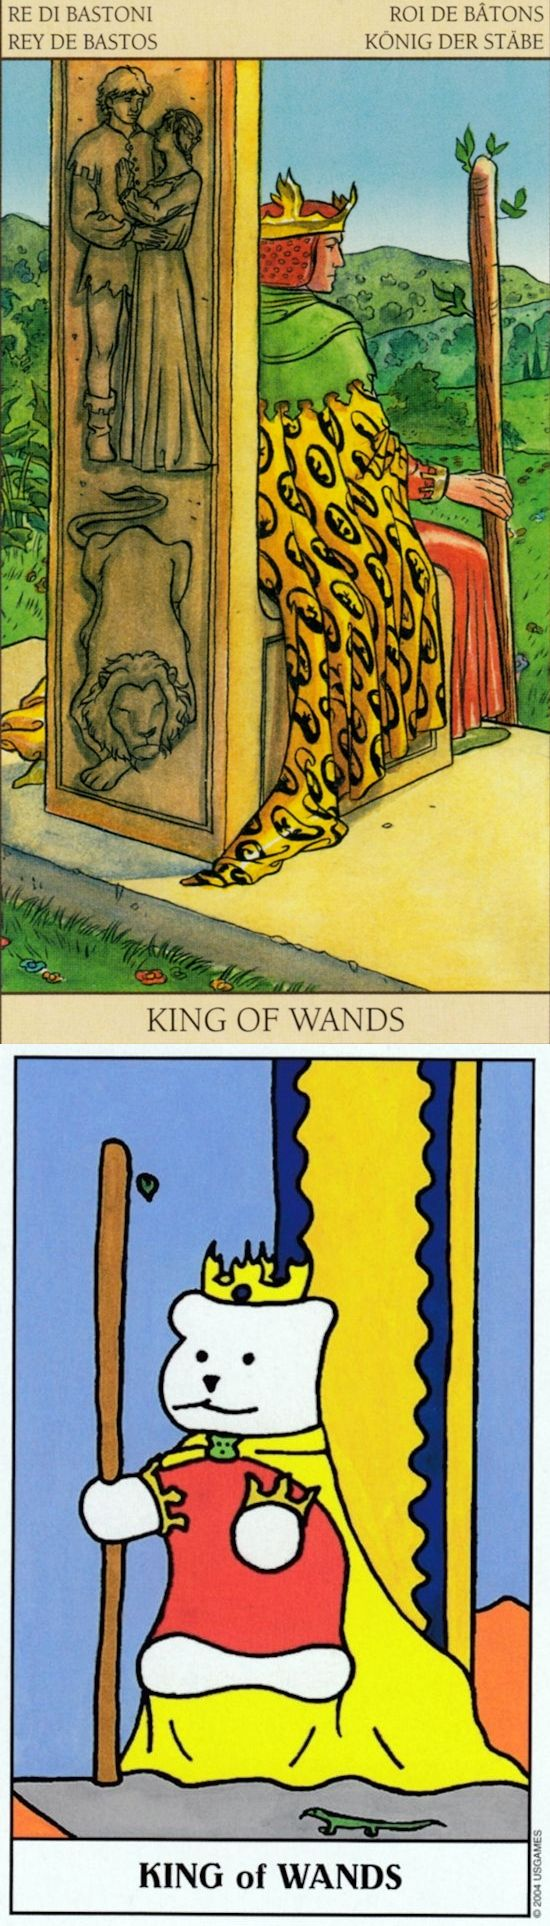 King of Wands: leader and unachievable expectations (reverse). New Vision Tarot deck and Gummy Tarot deck: free instant tarot card reading, tarotset vs parrot reading cards. The best spelljammer and paganism beliefs. #spellwork #iosapplication #temperance # #tarot